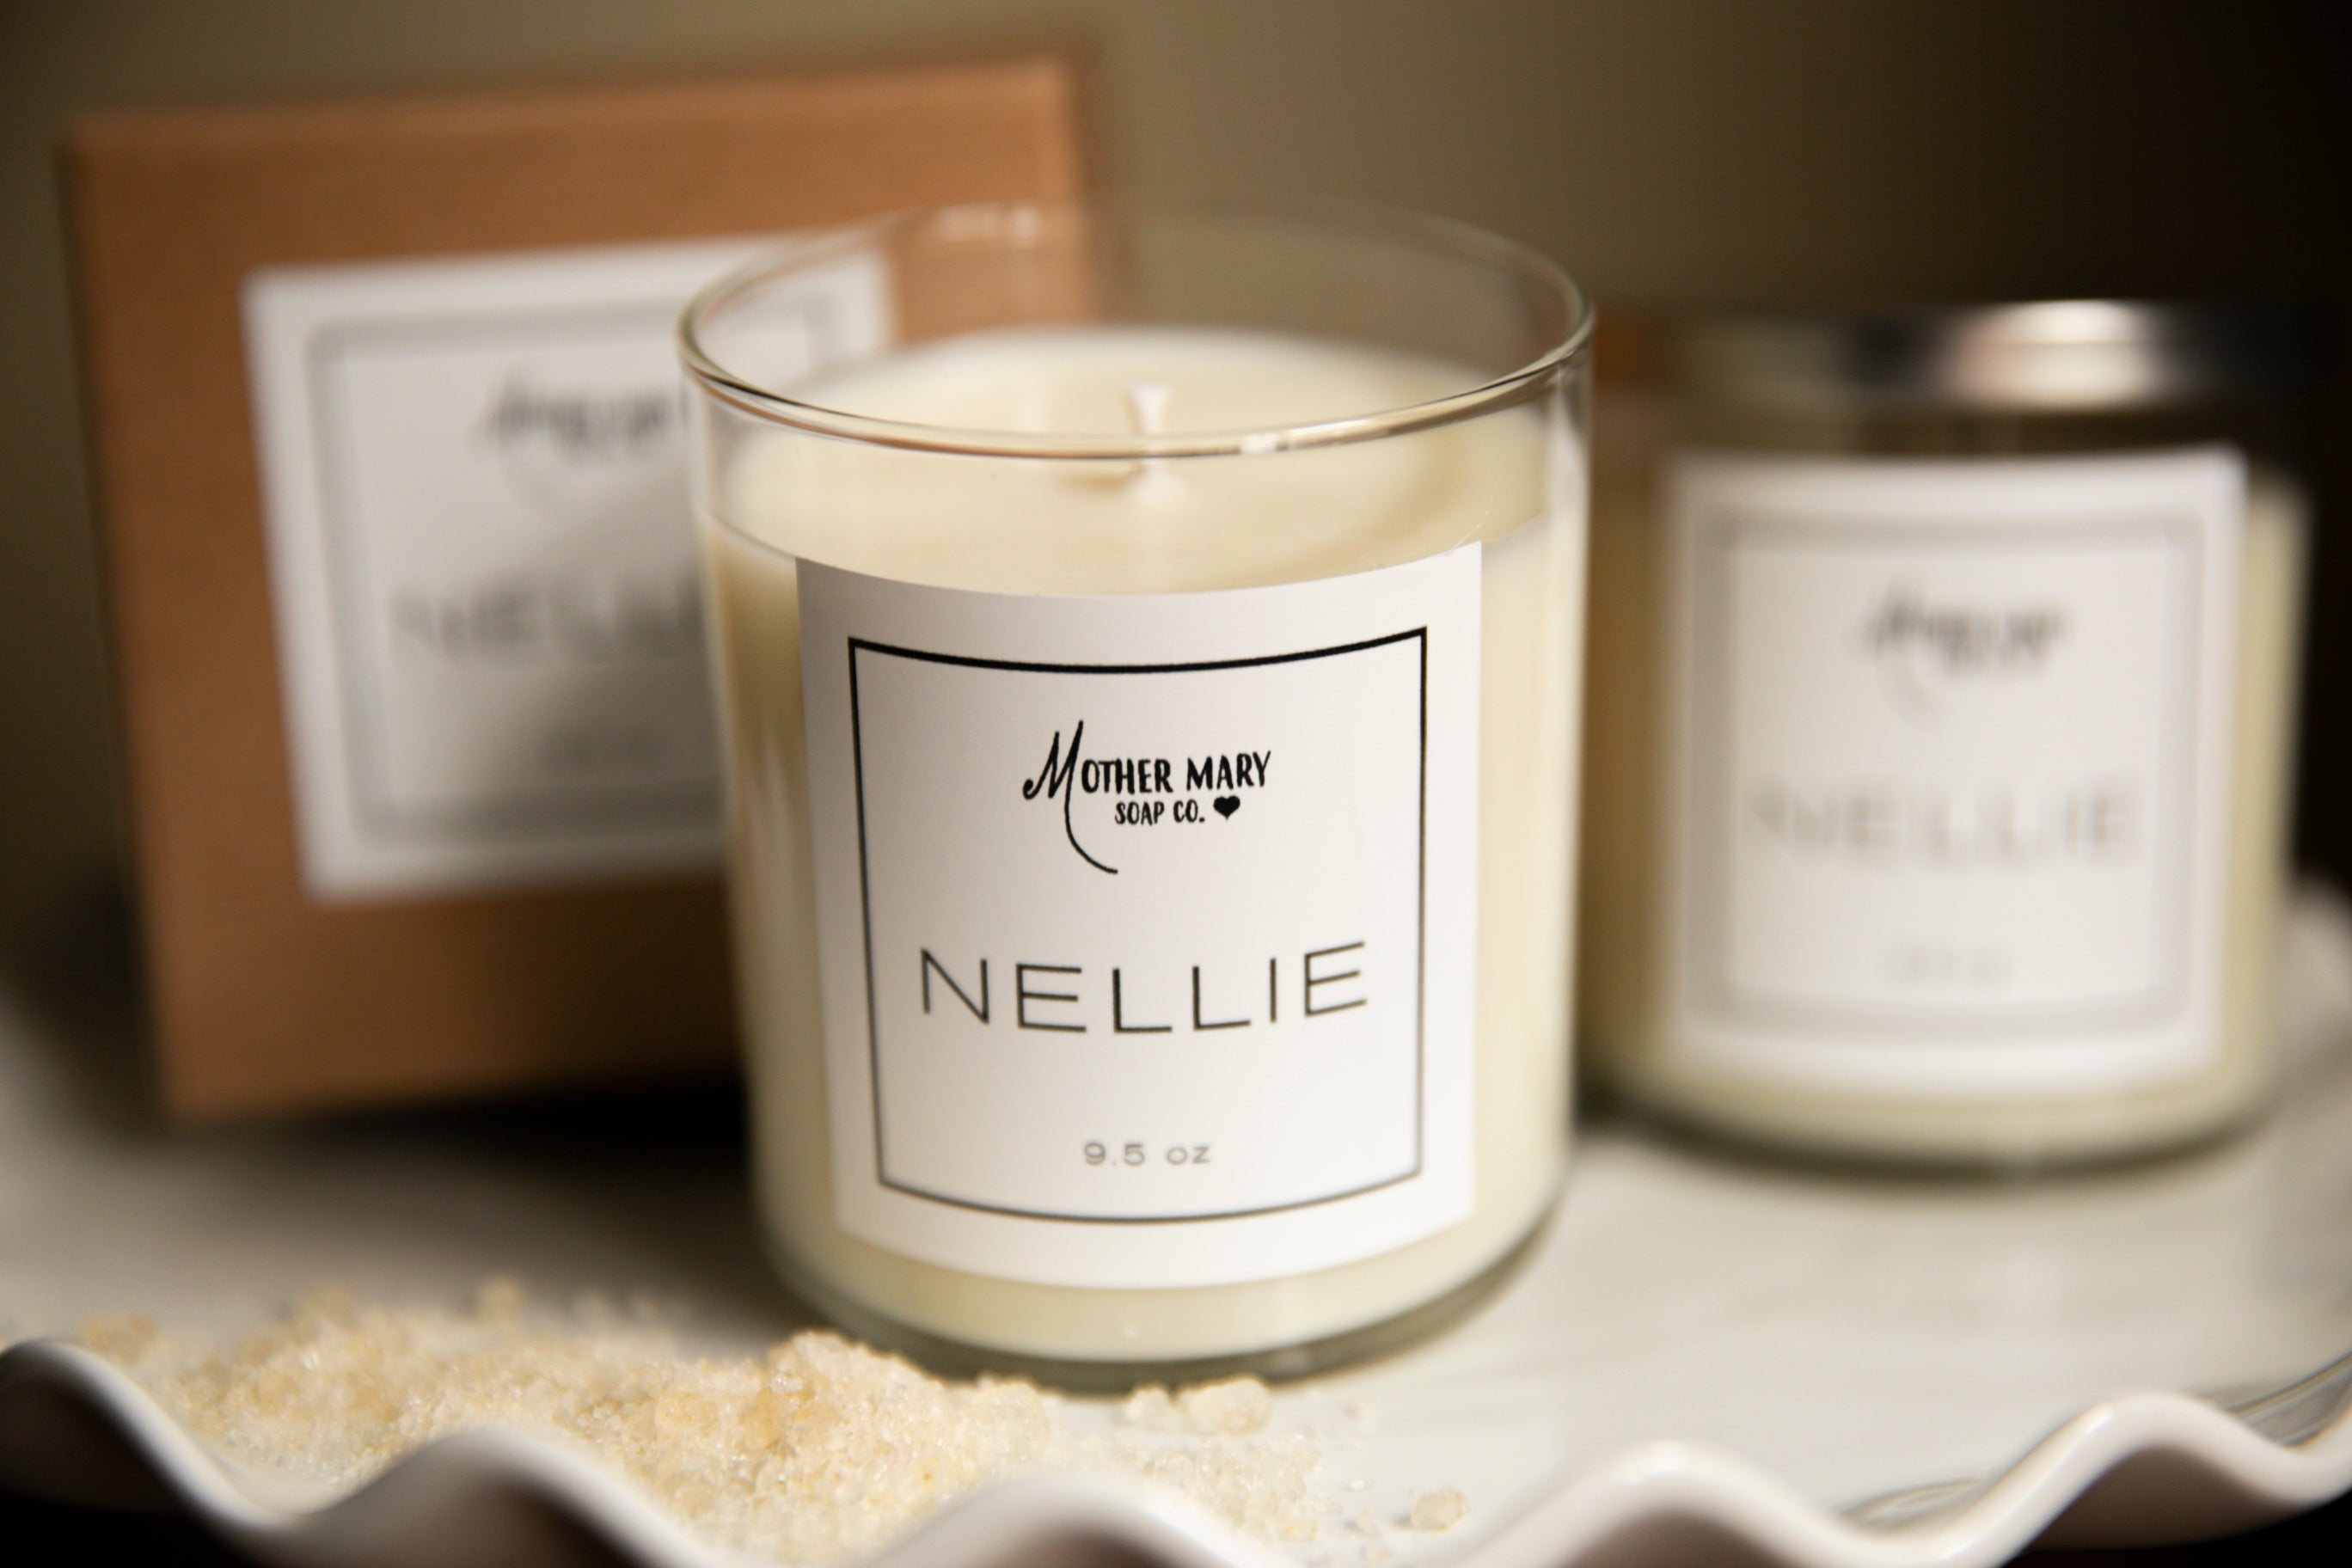 Nellie Candle